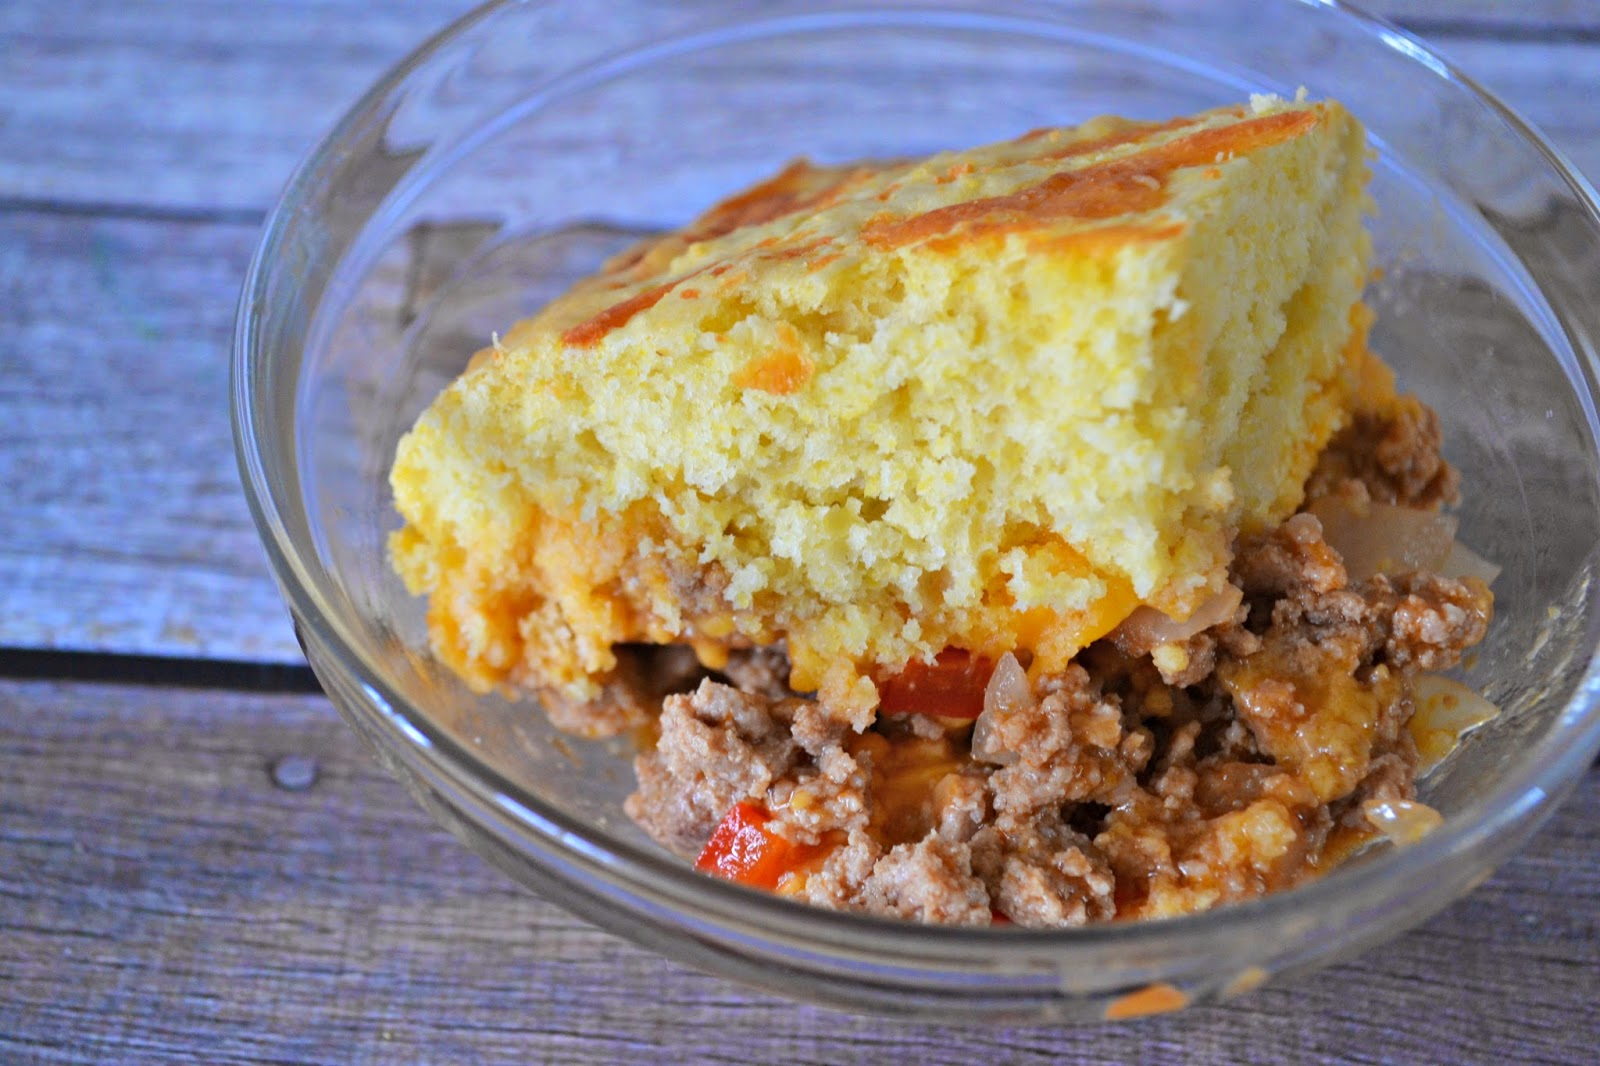 Cornbread Sloppy Joe Casserole #Recipe.  Cornbread Recipe.  Easy Cornbread recipe.  Sloppy Joe Recipe.  Sloppy Joe Casserole.  Sloppy Joe Casserole recipes.  Easy Casserole Recipes for families.  Dinner Ideas for Picky eaters!